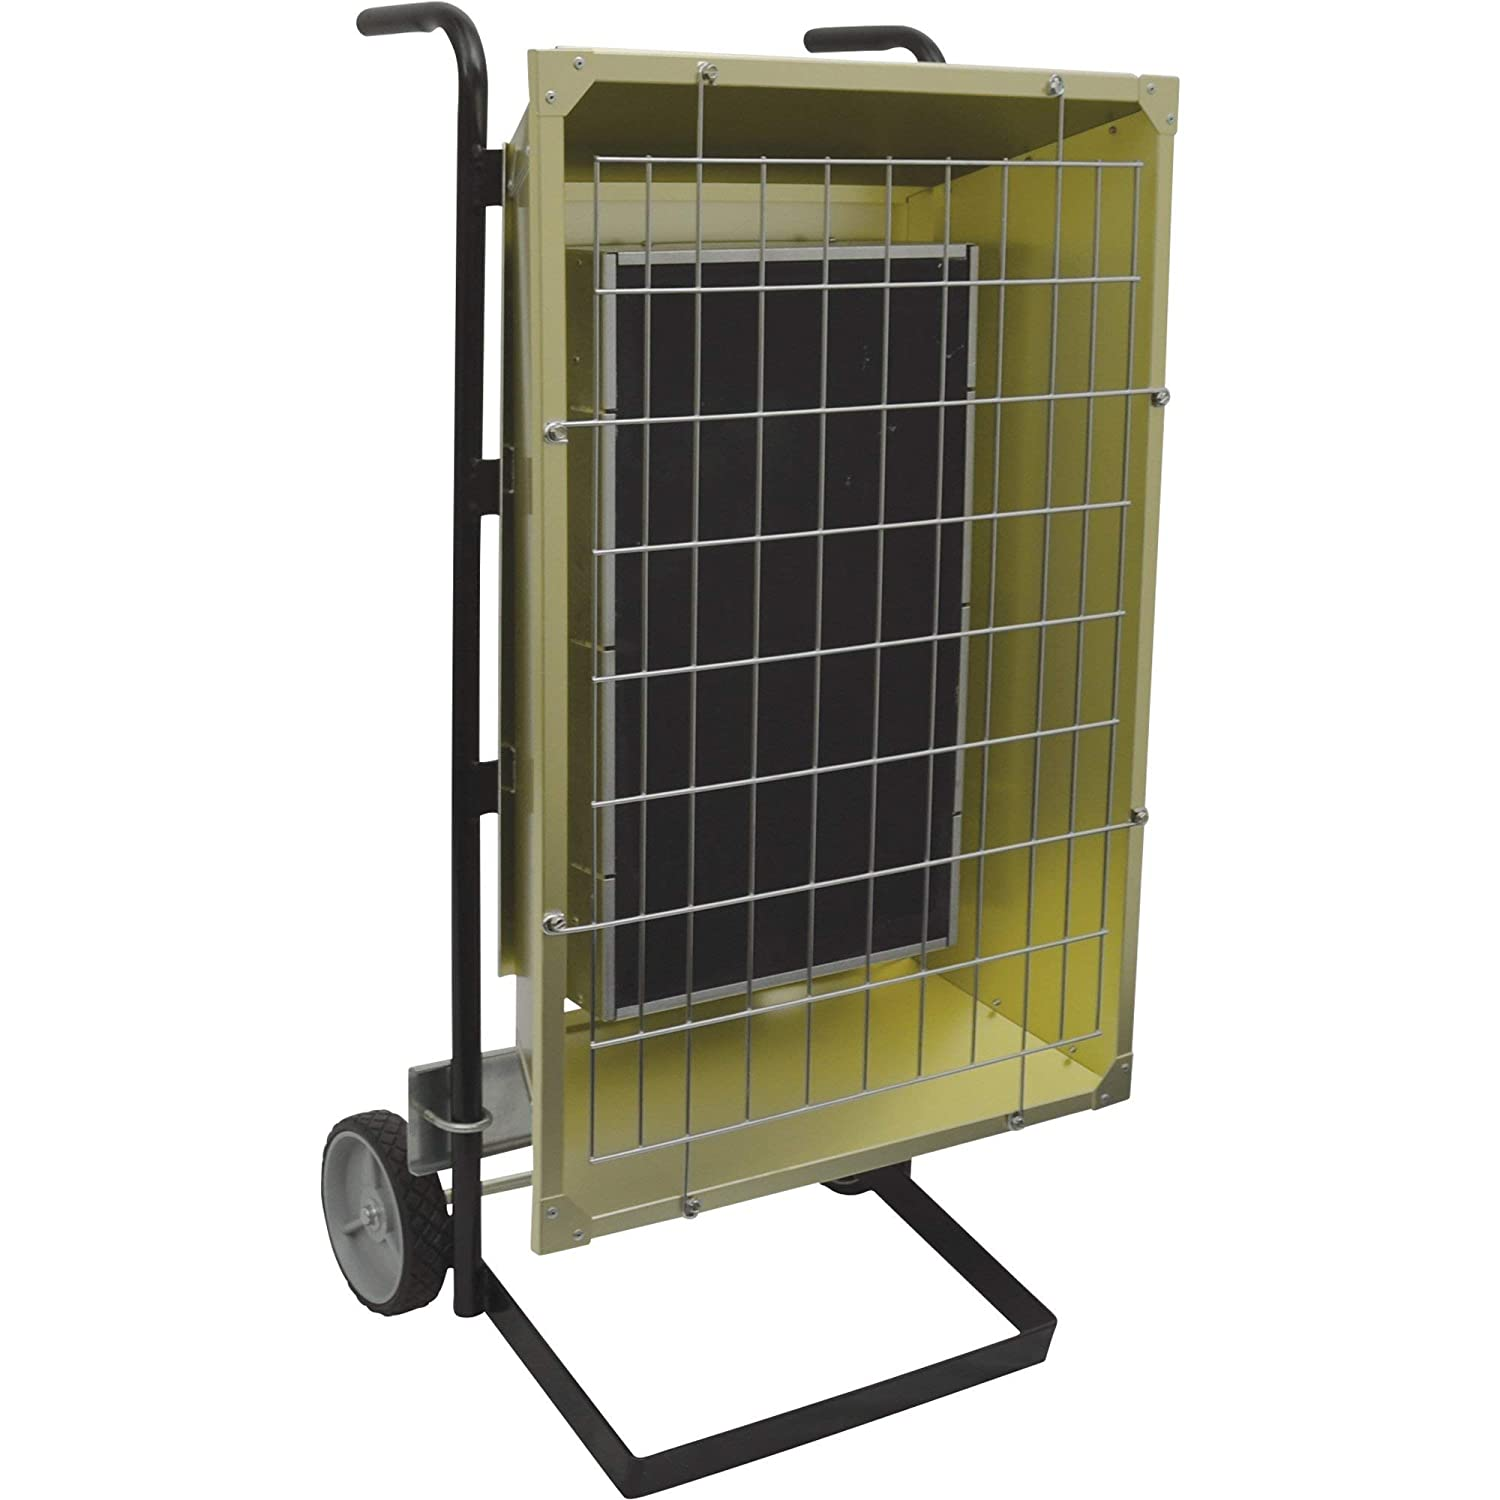 TPI Corporation FHK6483A Portable Electric Infrared Heater, Metal Sheath, Single or Three Phase, 6kW, 480V